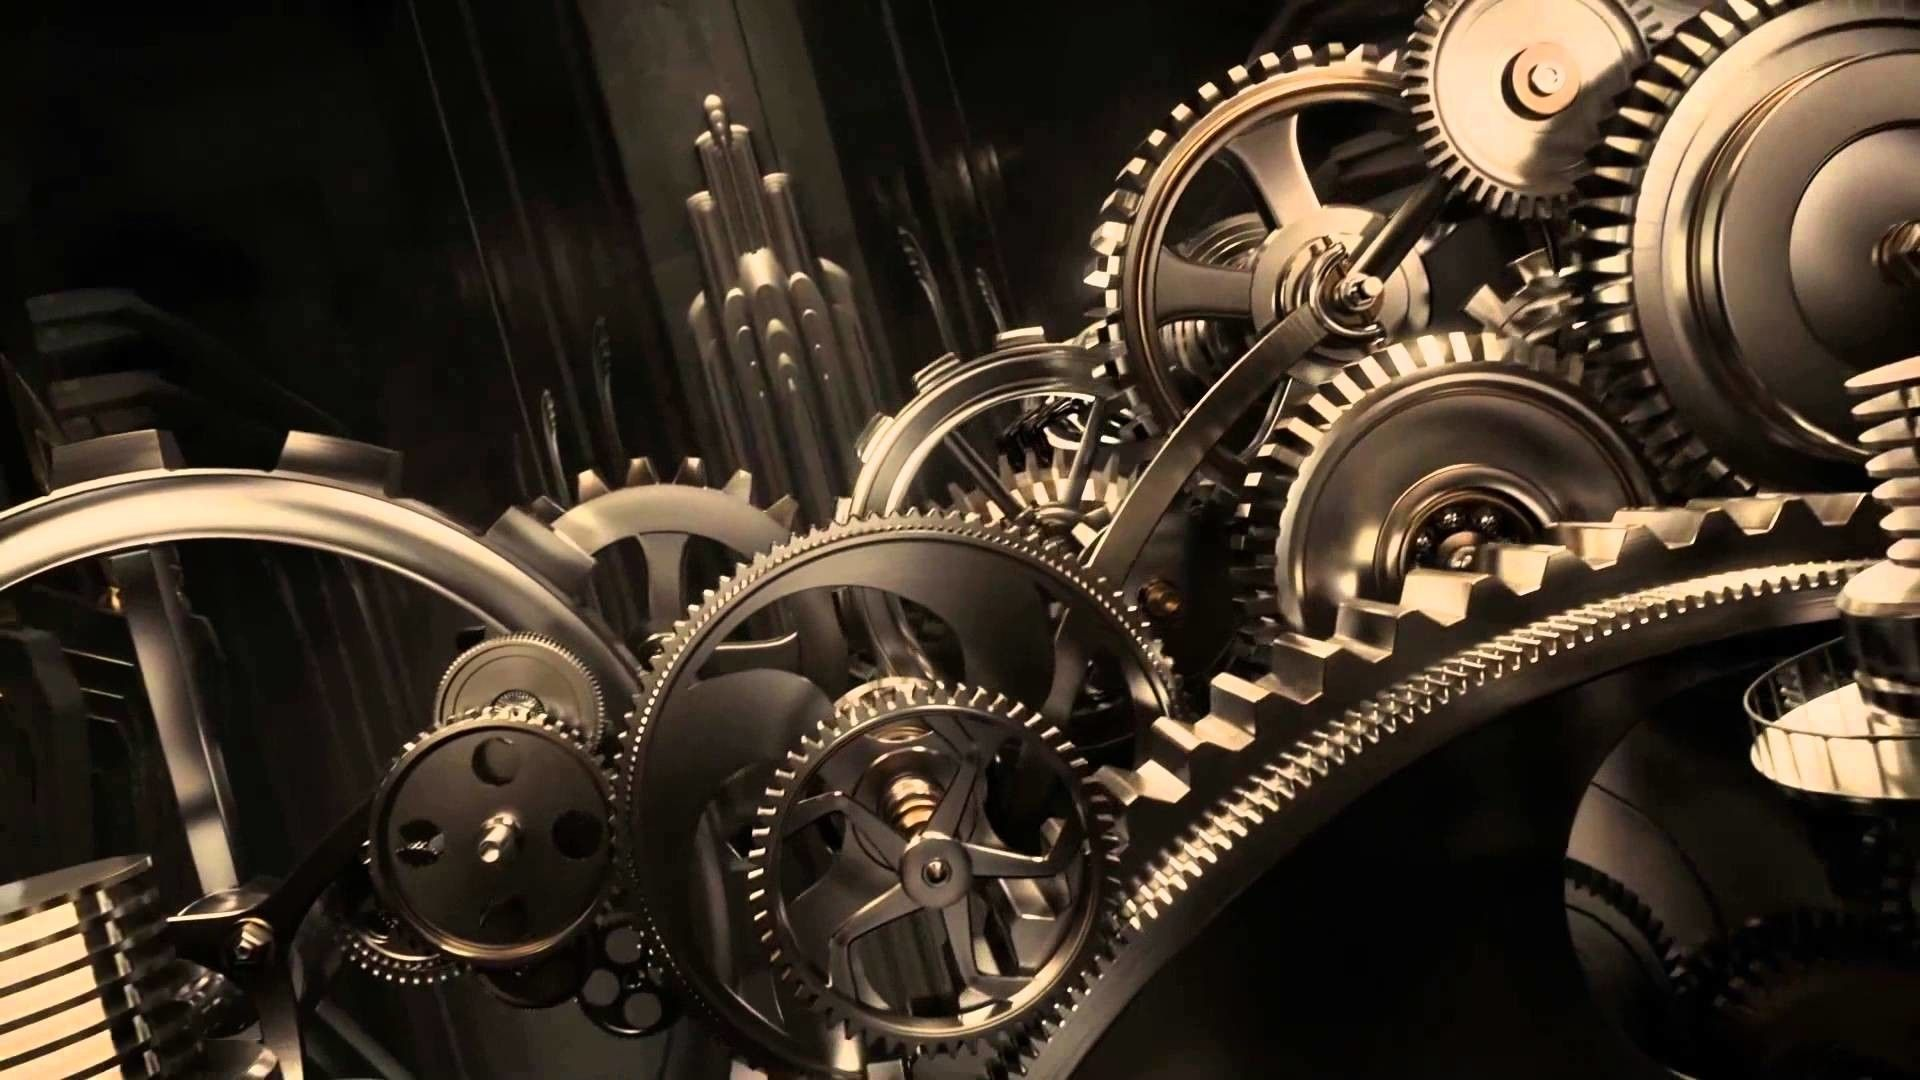 1920x1080 Mechanical Engineering Wallpaper 850818 Mechanical Engineering Mechanical Engineering Engineering Electrical Engineering Projects